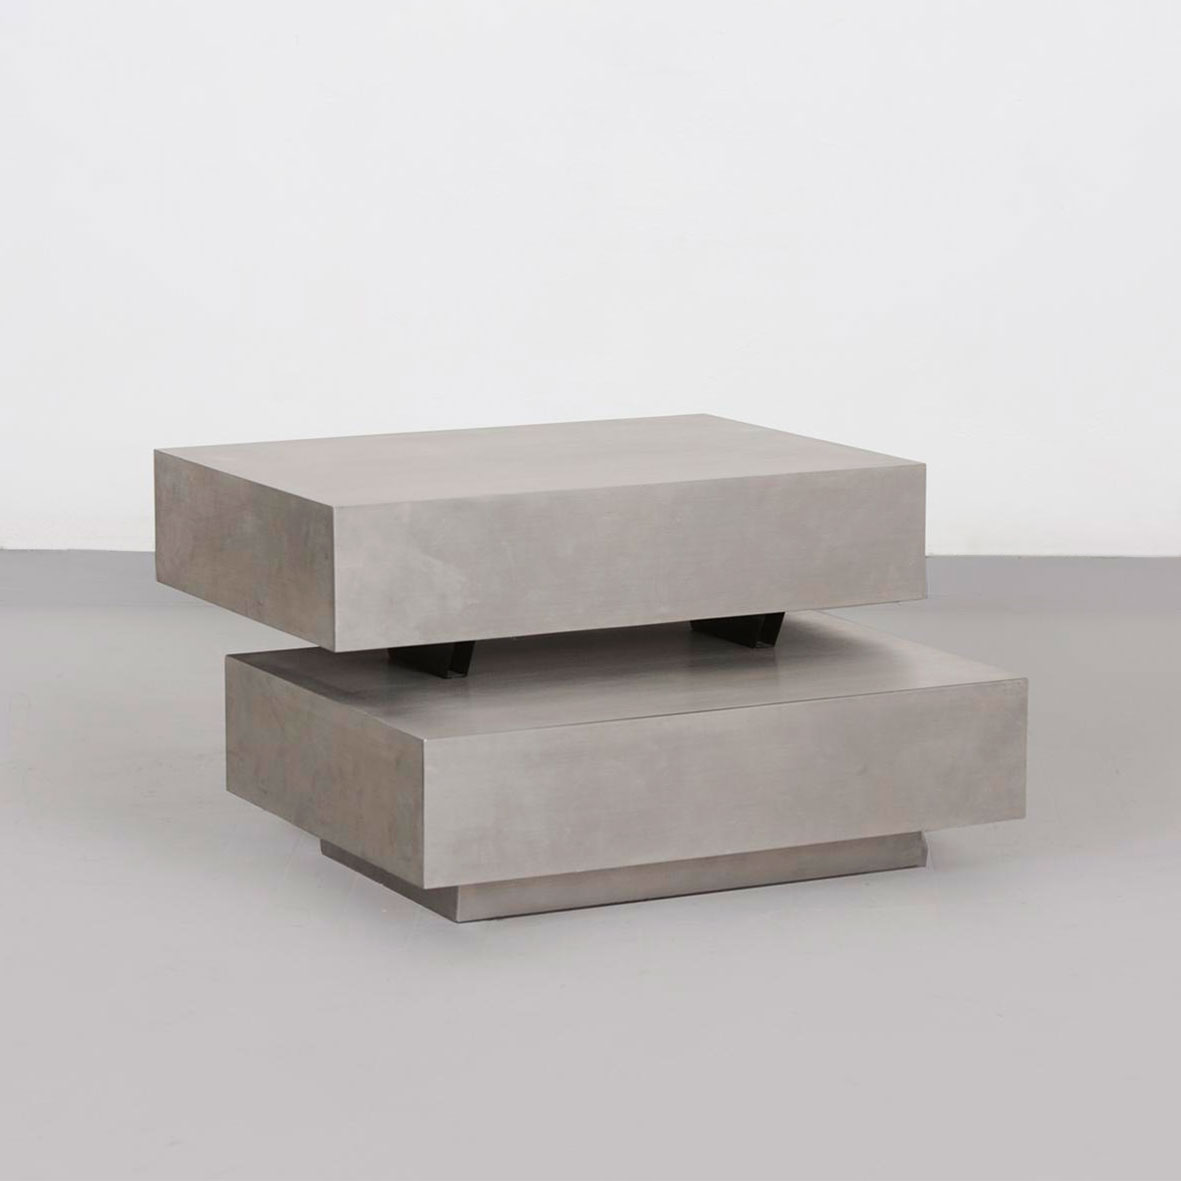 Gabriella Crespi  |                                  Scultura low table